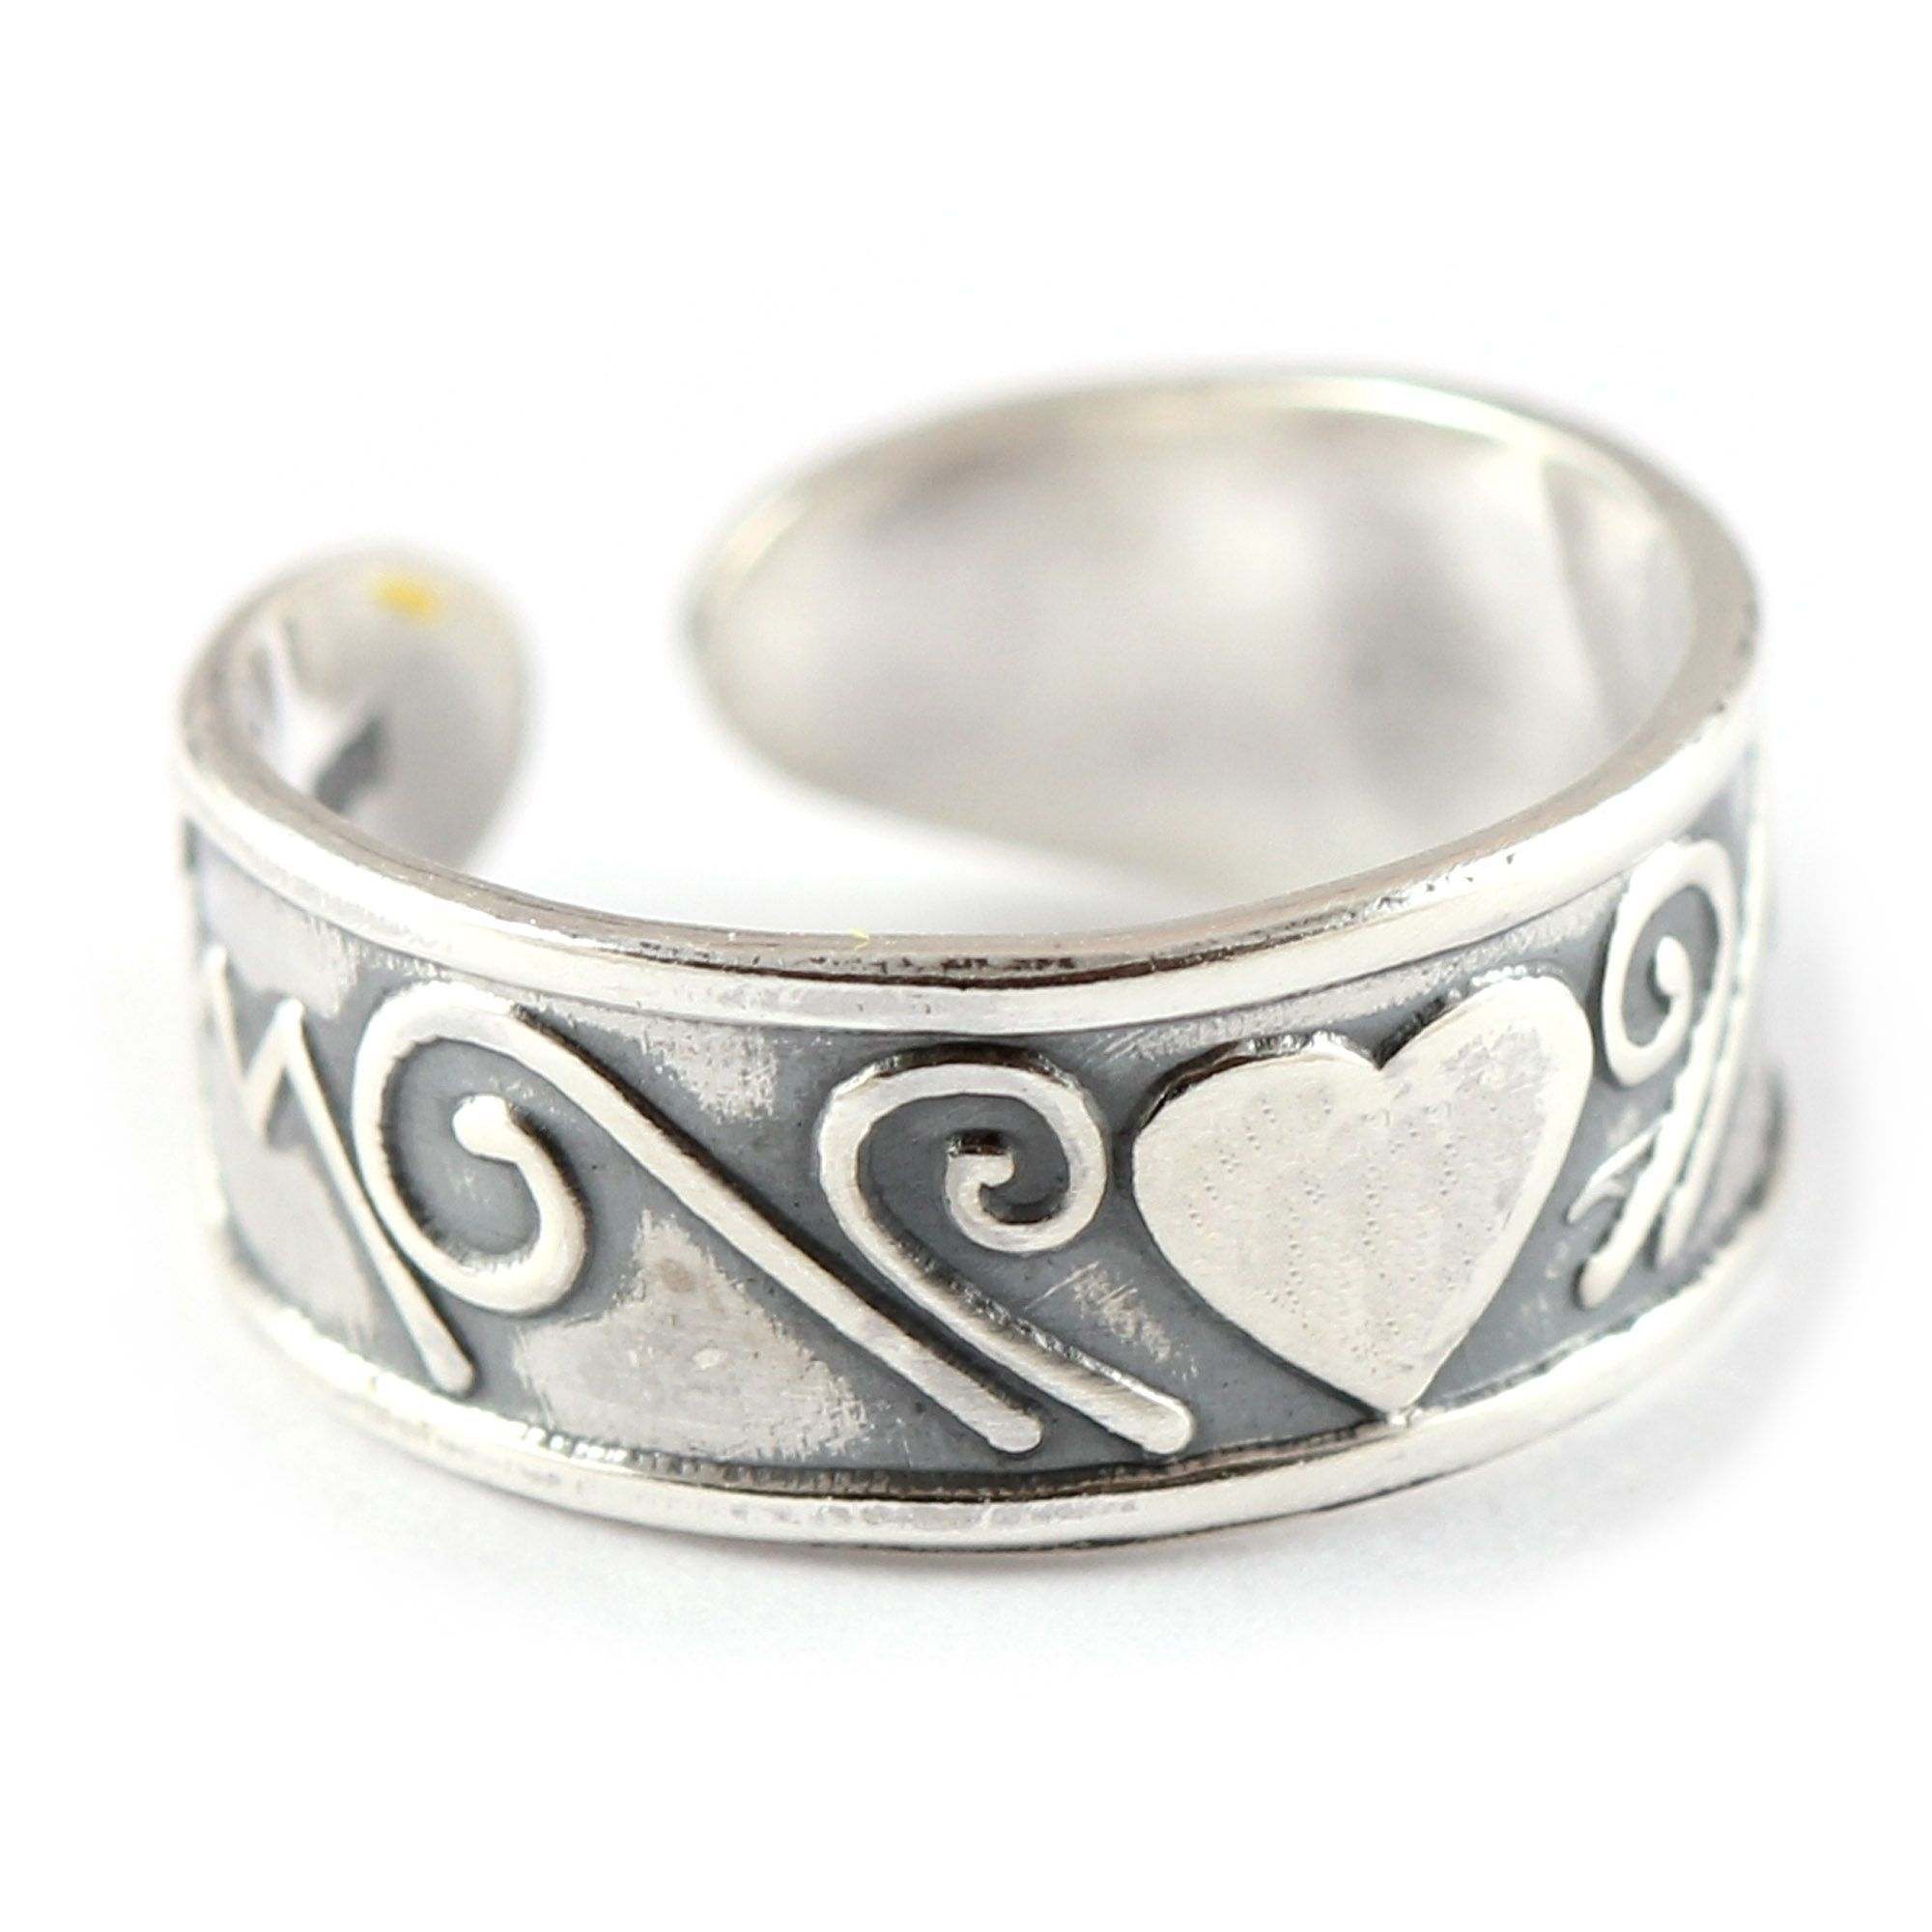 Charm School Uk > Sterling Silver Toe Rings > Heart & Swirls Design Throughout Most Popular Heart Toe Rings (View 7 of 15)